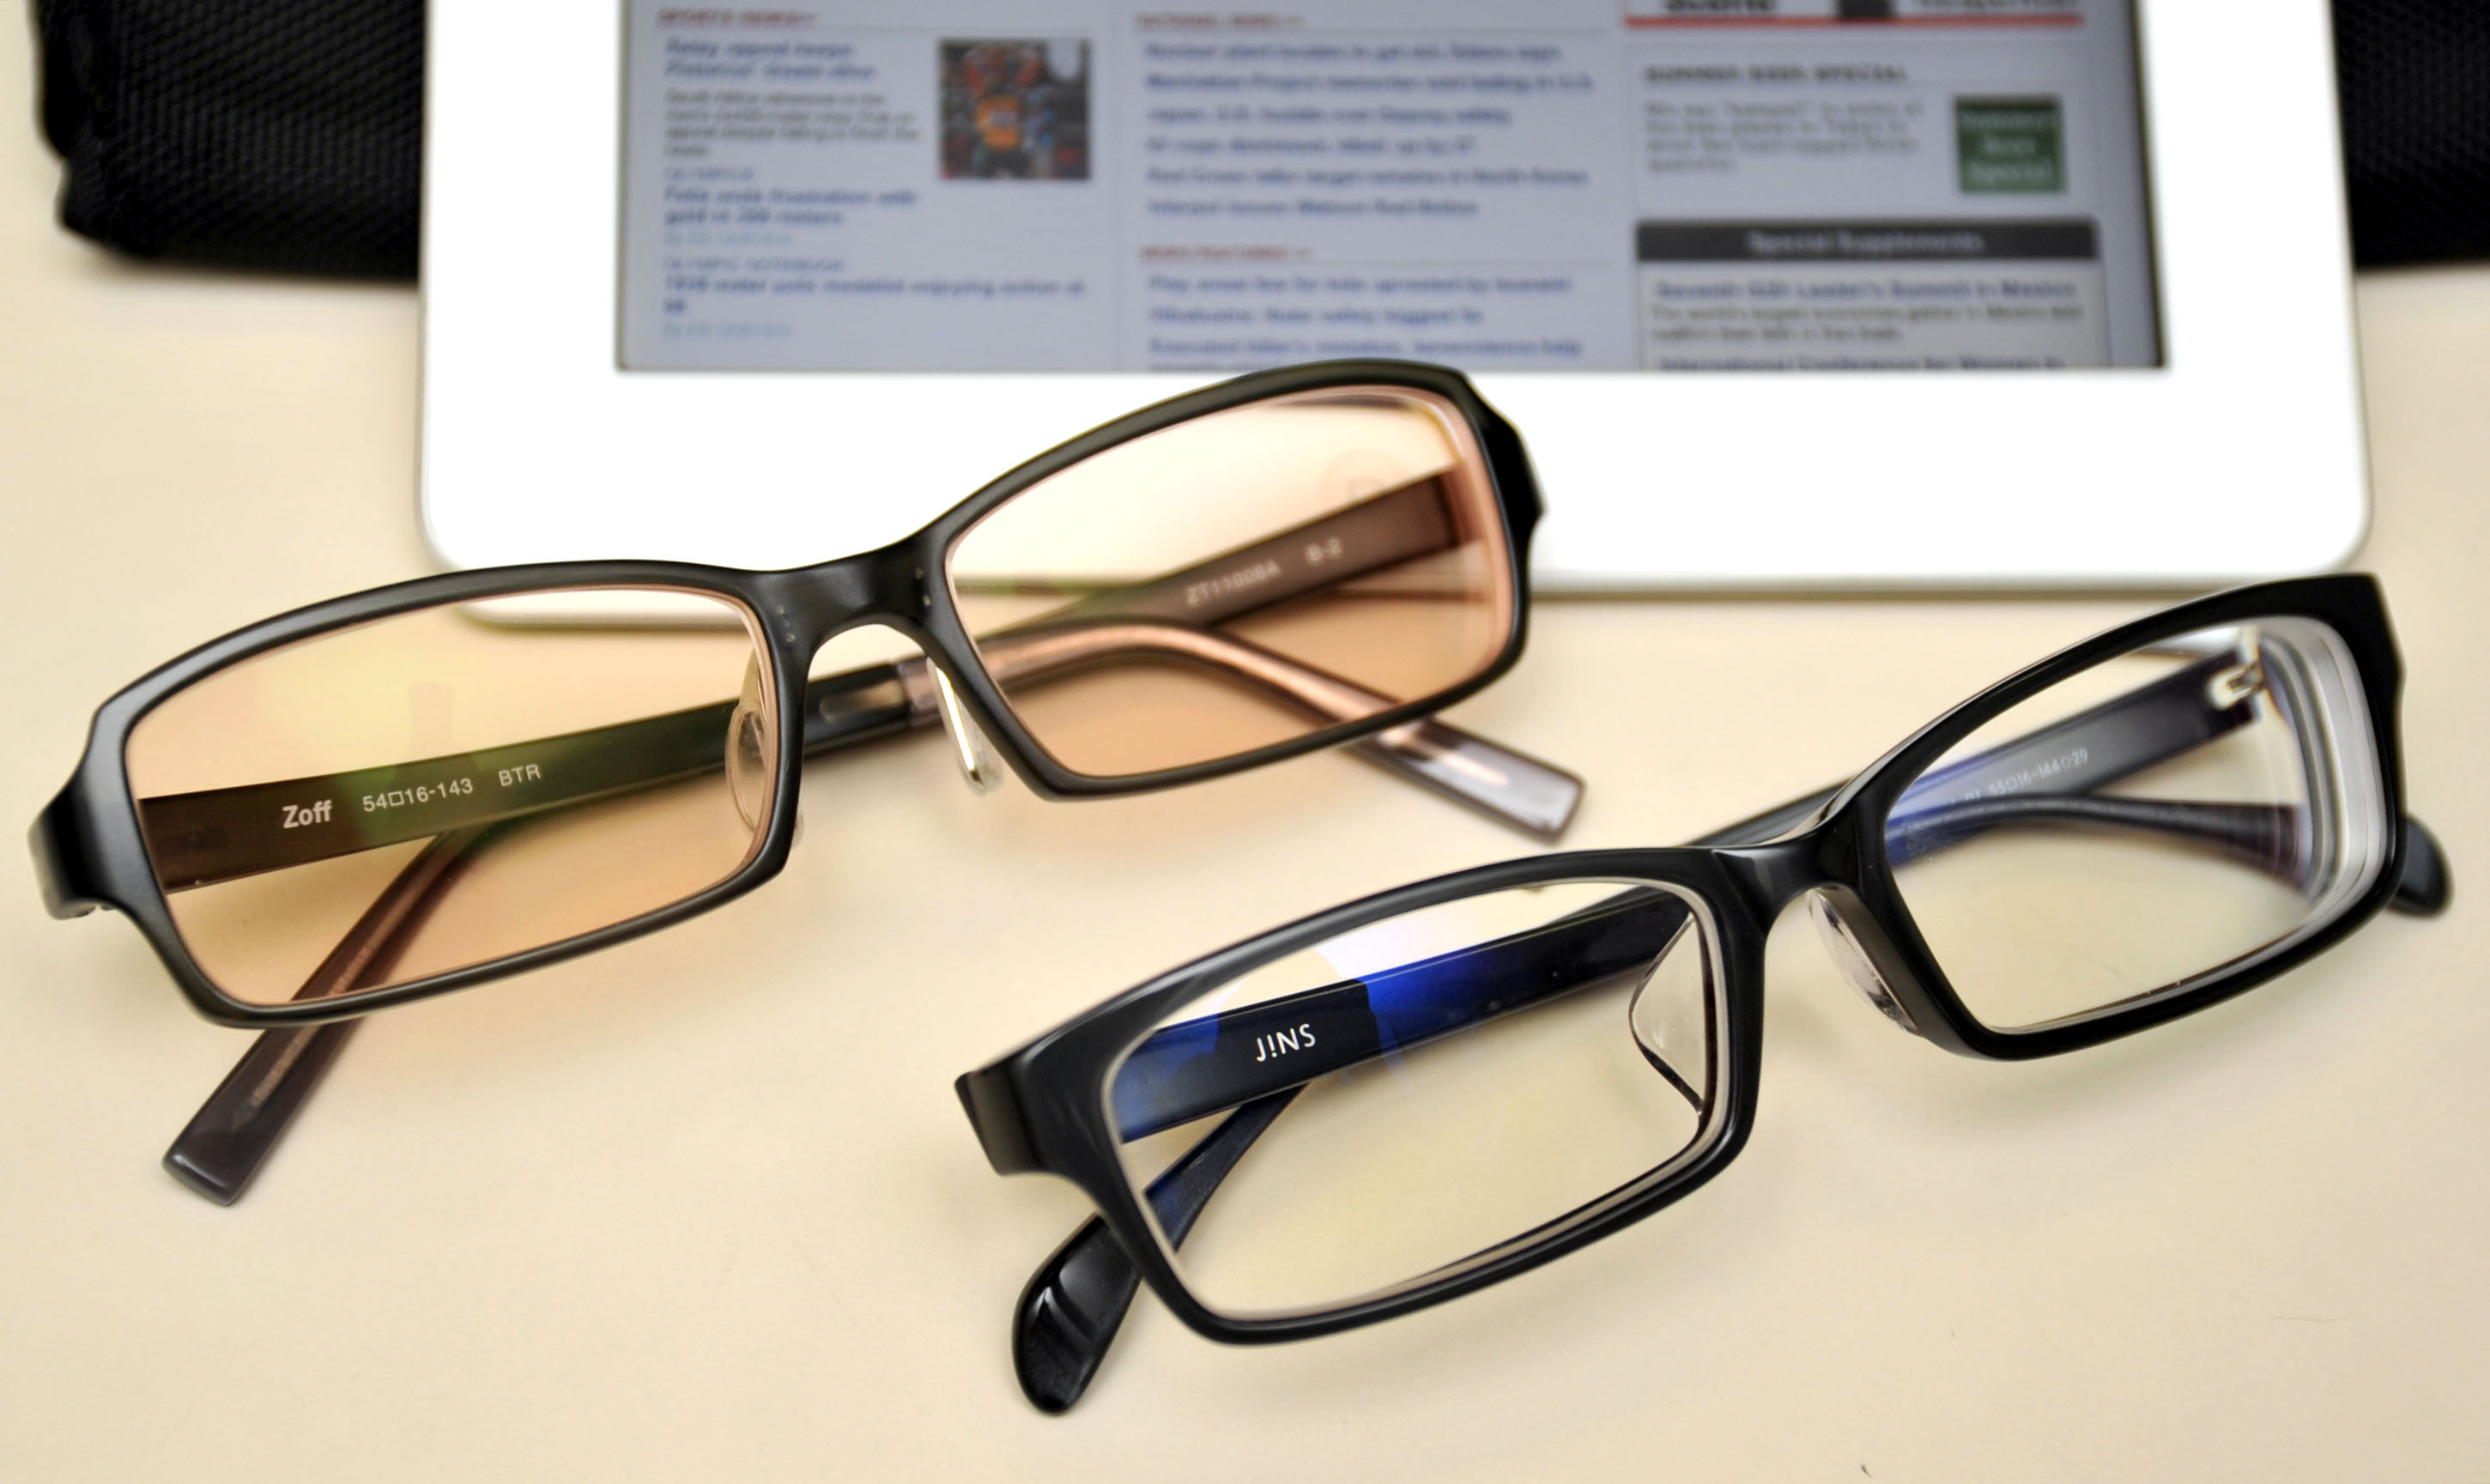 Computer glasses , image photo, Hodo-bu Nagata reports. Aug. 10, 2012. MIURA PHOTO